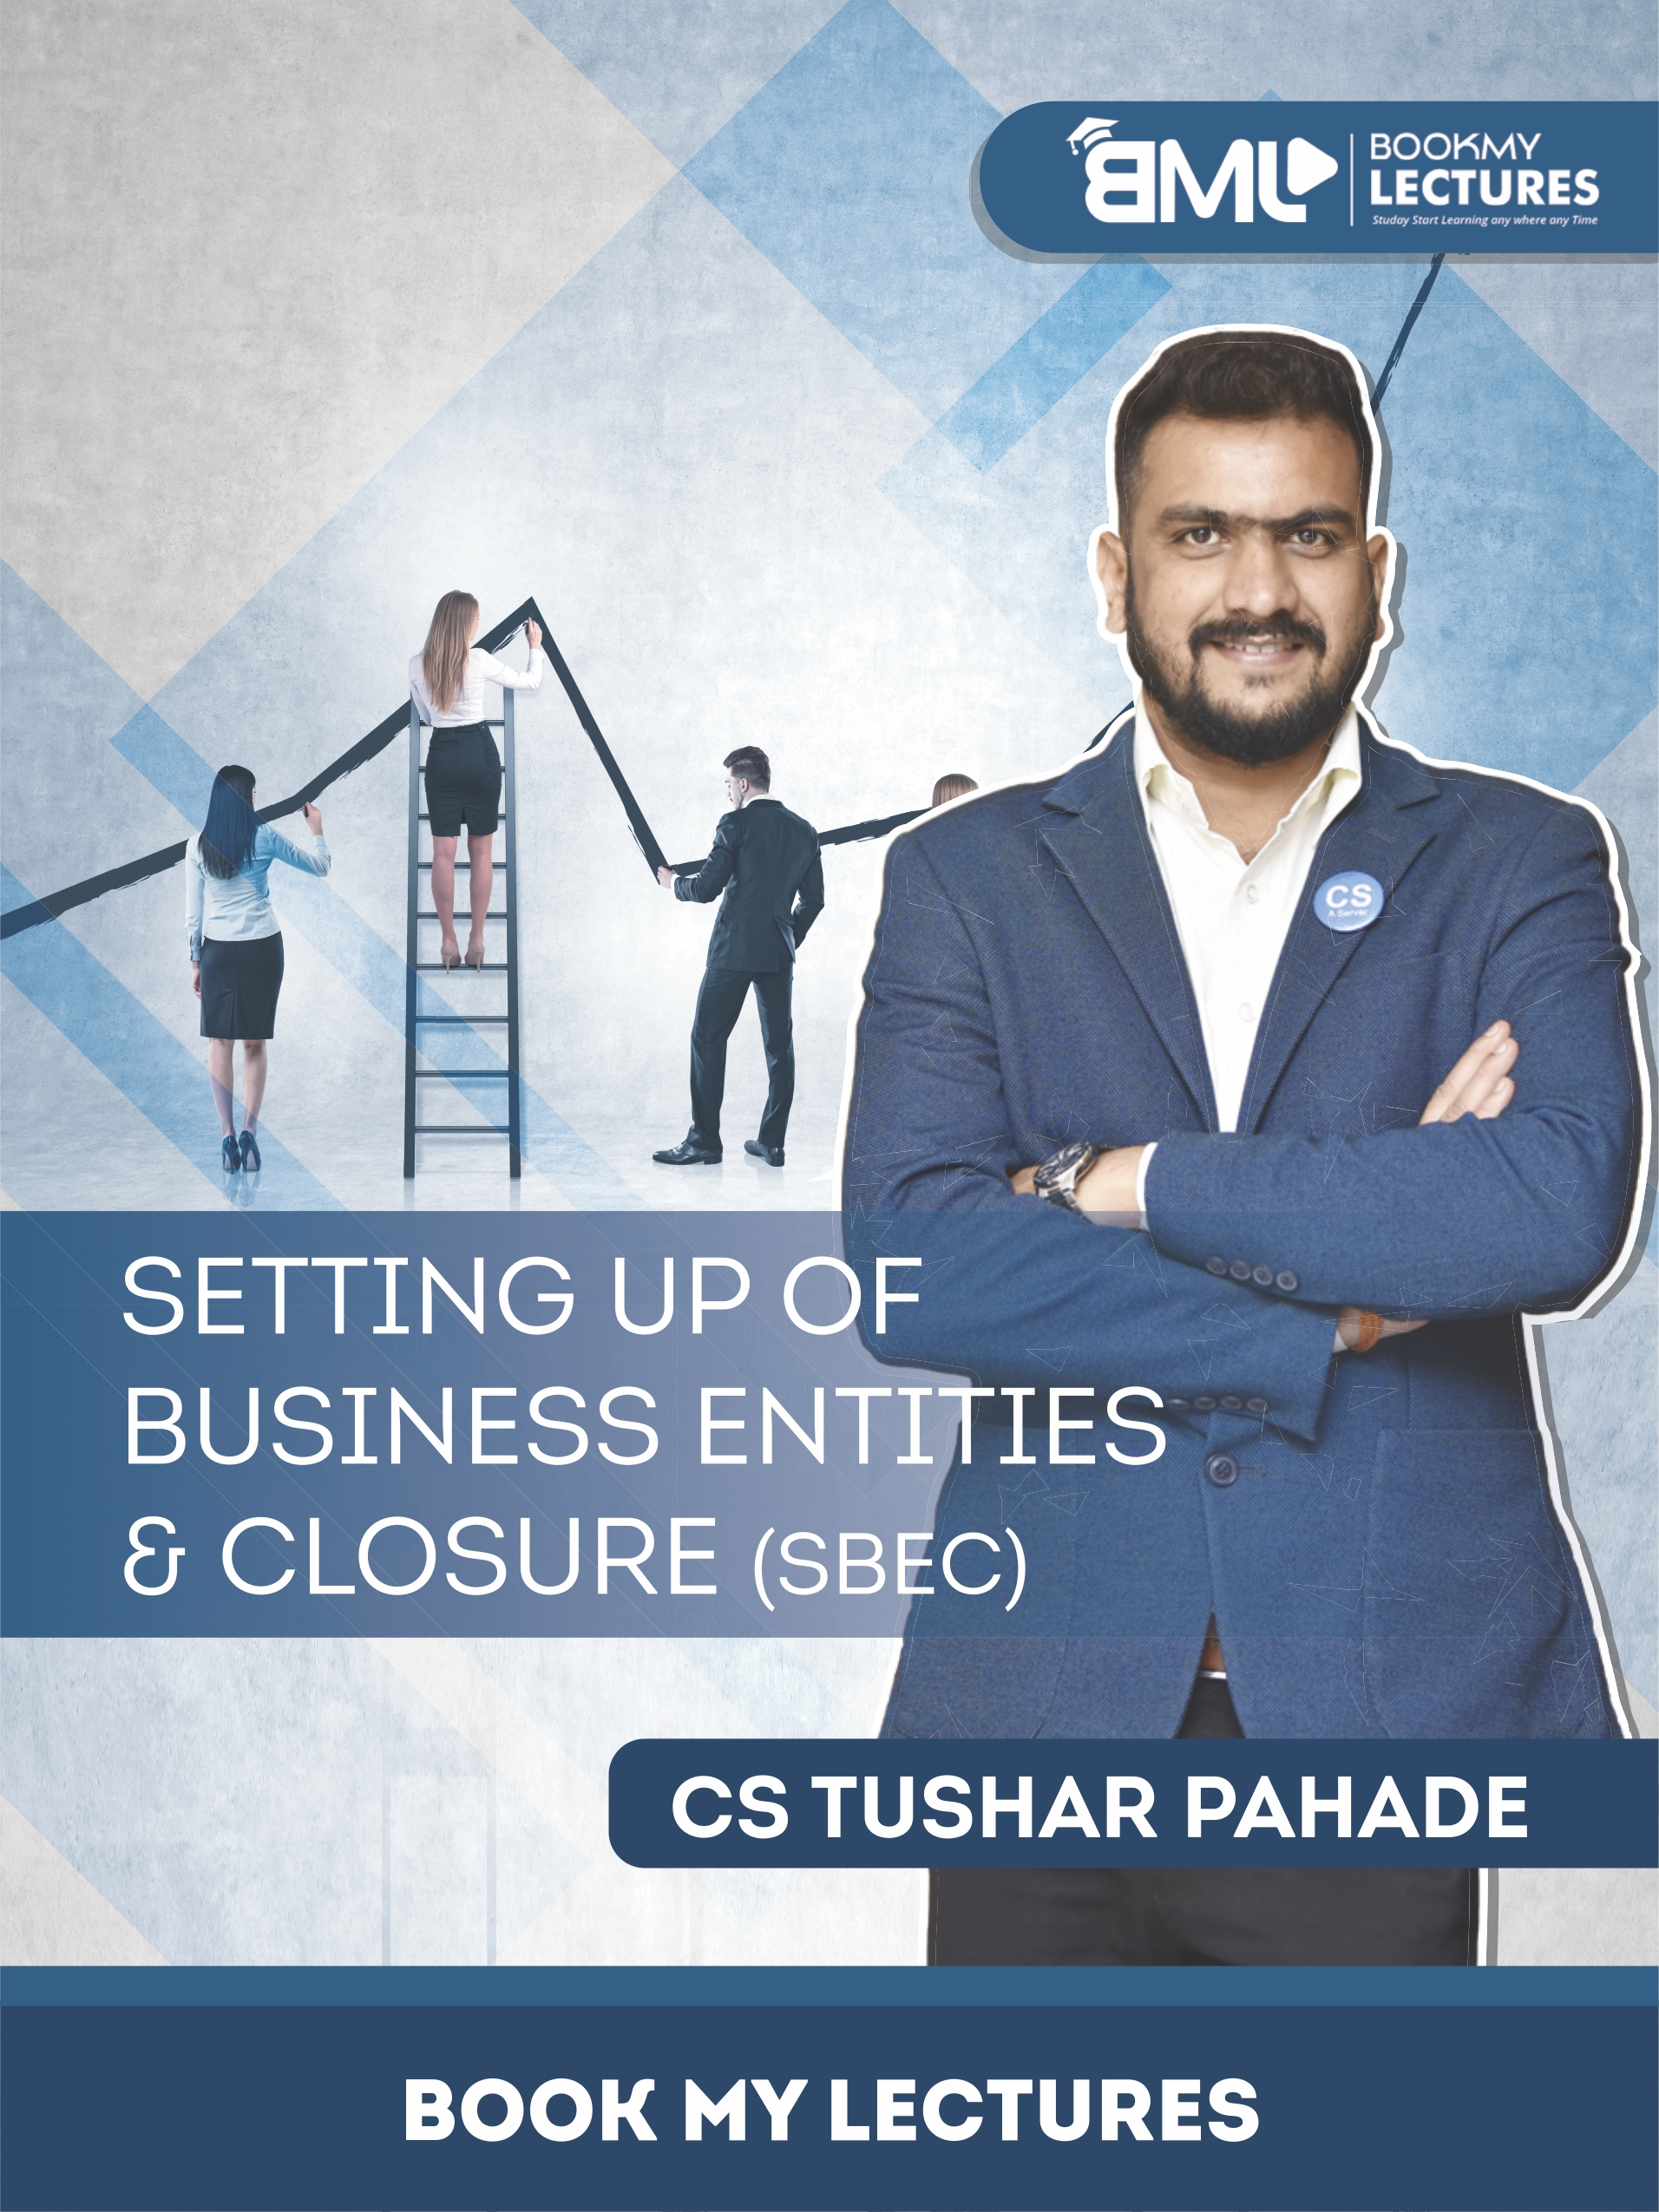 SBEC Video Lectures by CS Tushar Pahade